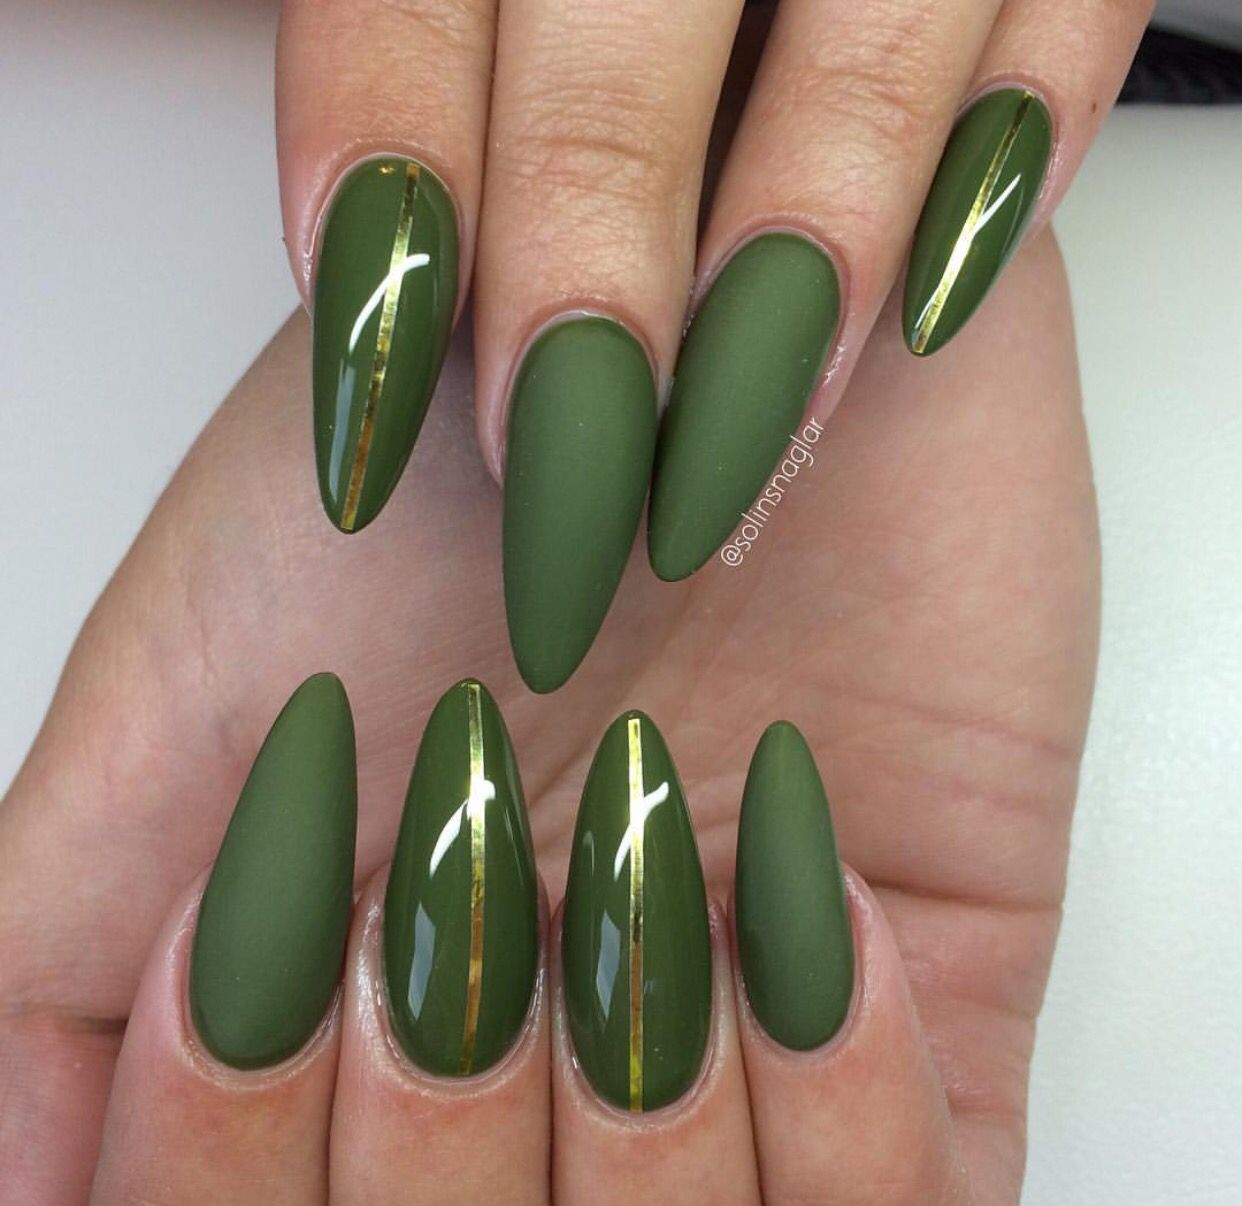 Pin by Kairishavon on Polished! | Pinterest | Sharp nails